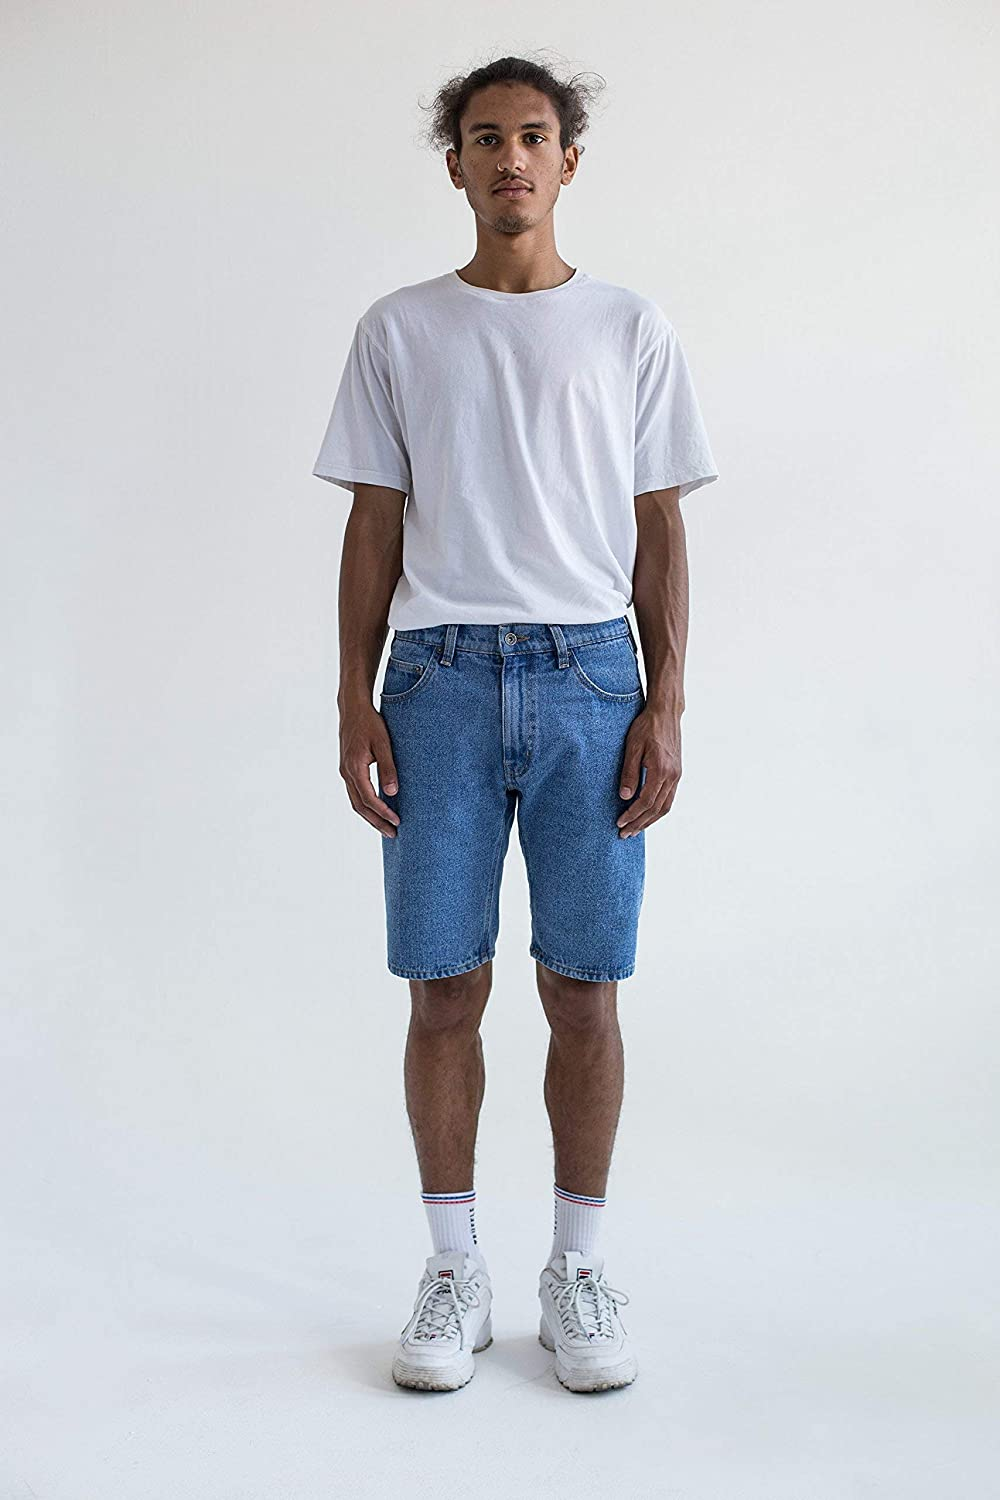 Mens Shorts, Blue Mens Shorts, Denim Shorts, Vintage Shorts, Denim Shorts for Men, Jean Shorts, Blue Shorts, Cargo Shorts, Men's Shorts, Cargo Shorts, Mens Cotton Shorts, Mens Summer Shorts Men's Shorts